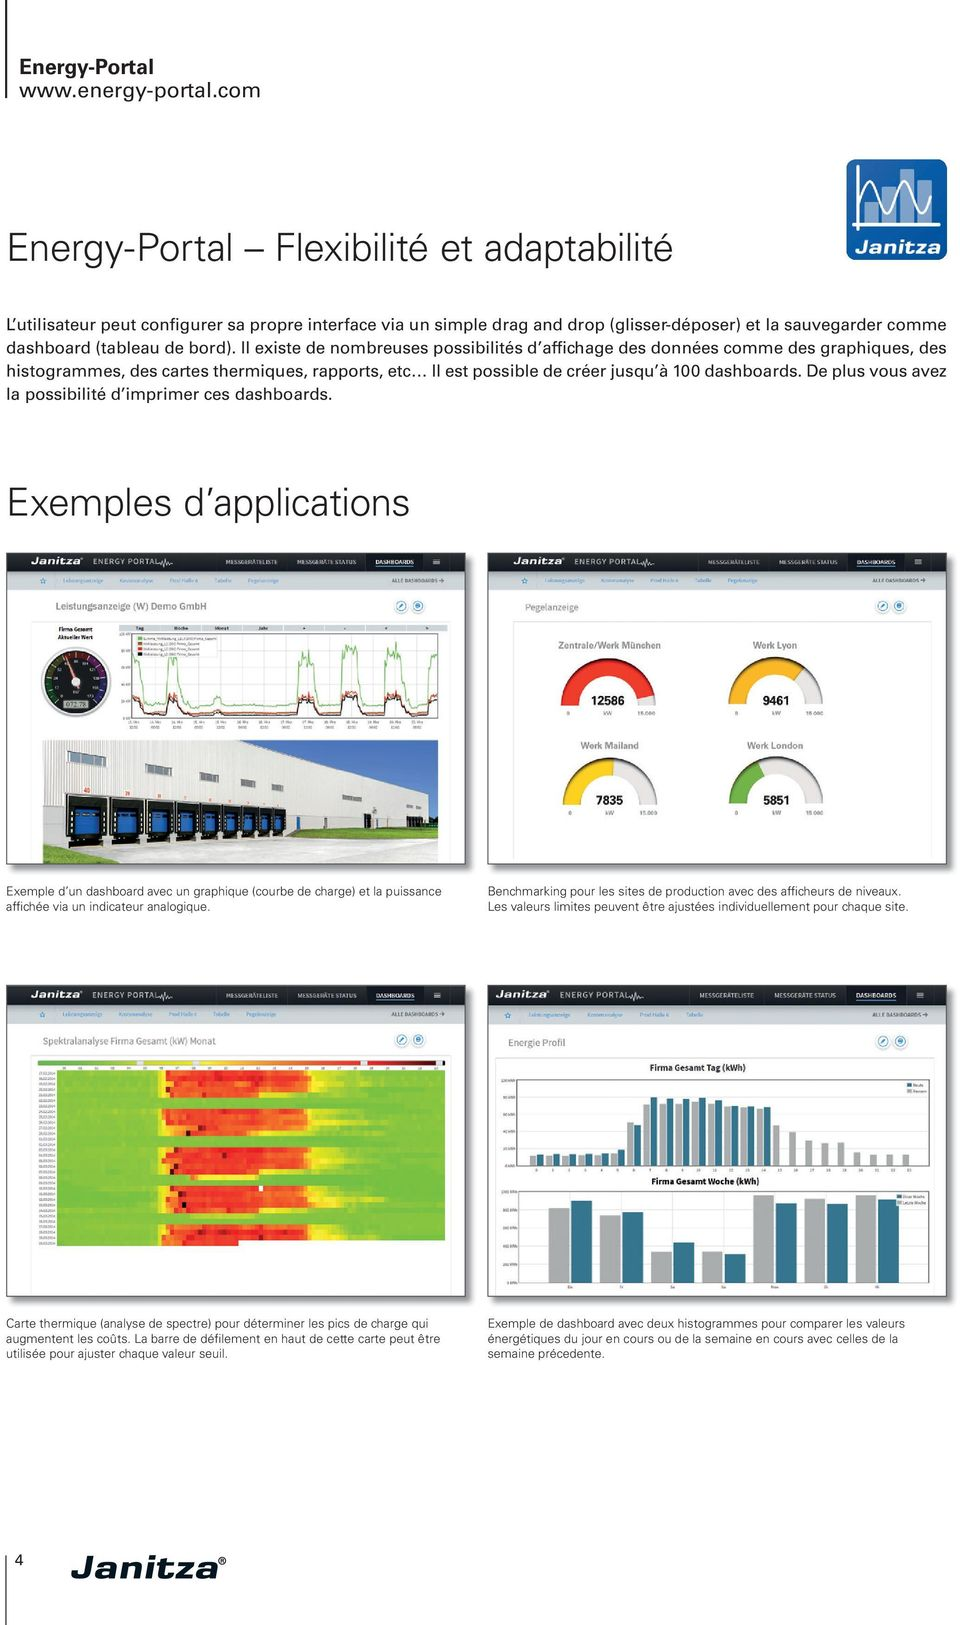 De plus vous avez la possibilité d imprimer ces dashboards. Exemples d applications Exemple d un dashboard avec un graphique (courbe de charge) et la puissance affichée via un indicateur analogique.